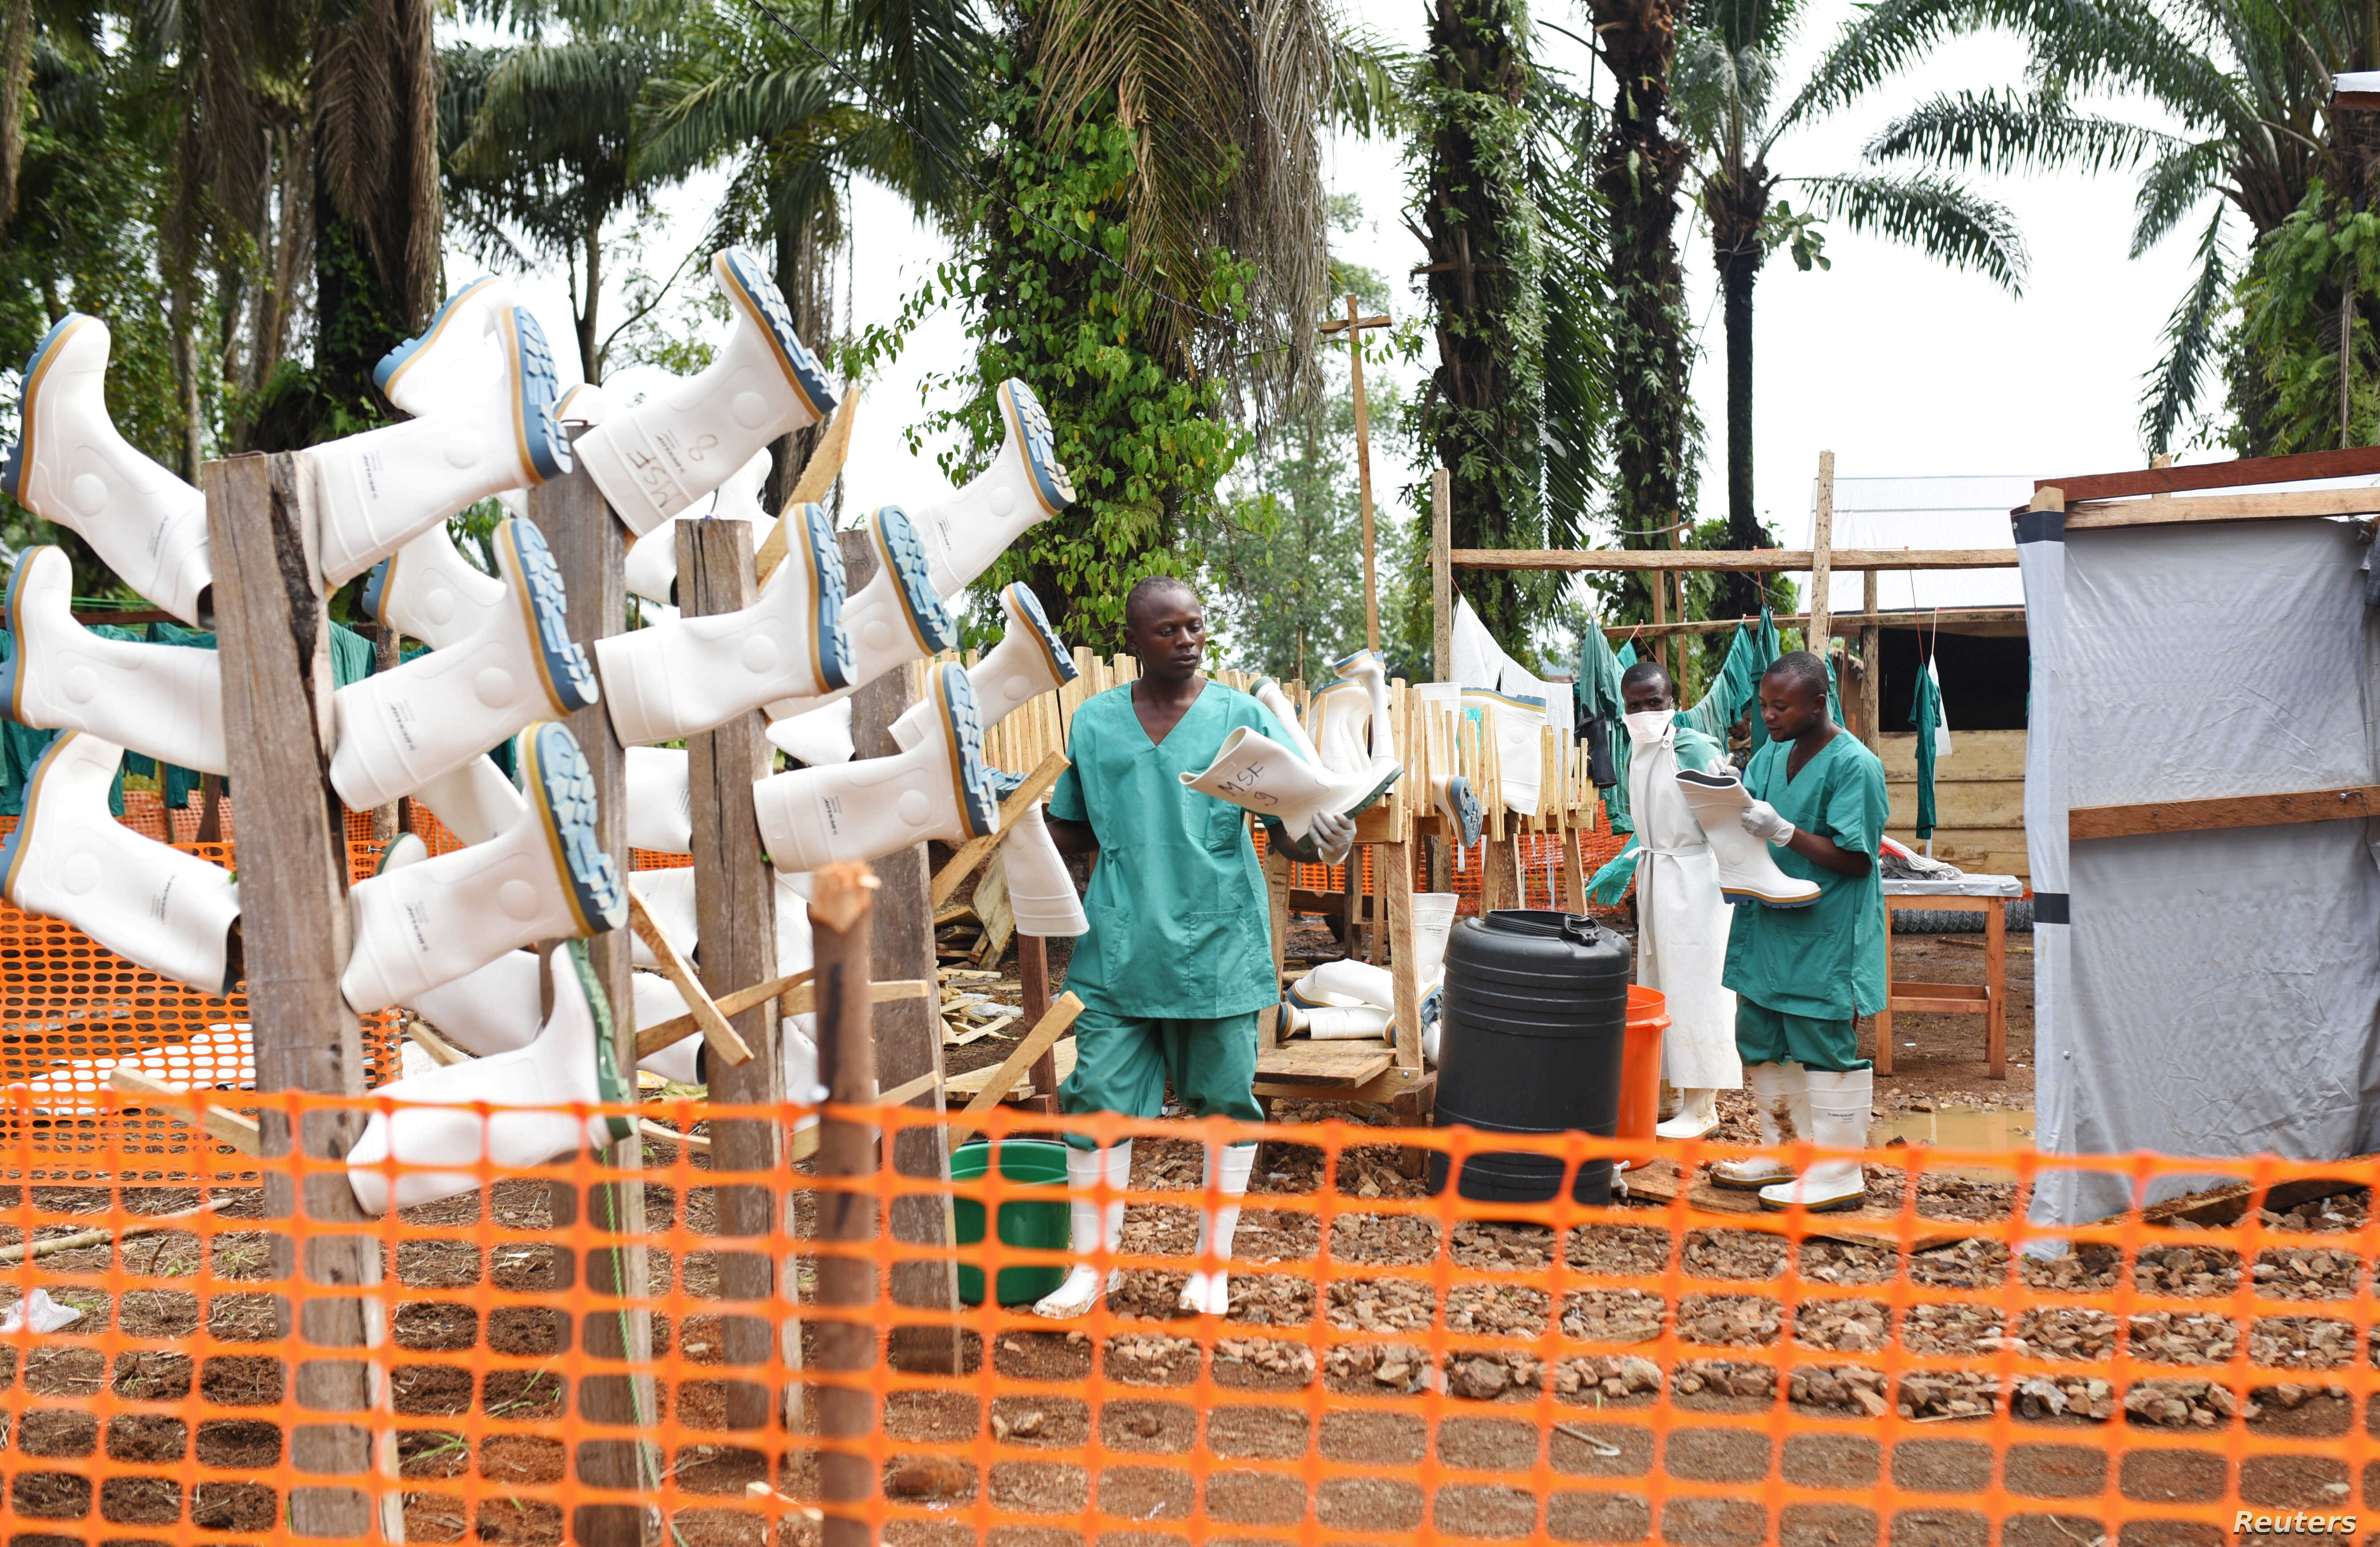 Congolese health workers clean gumboots as they prepare the Ebola treatment center in the village of Mangina in North Kivu province of the Democratic Republic of Congo, Aug. 18, 2018.